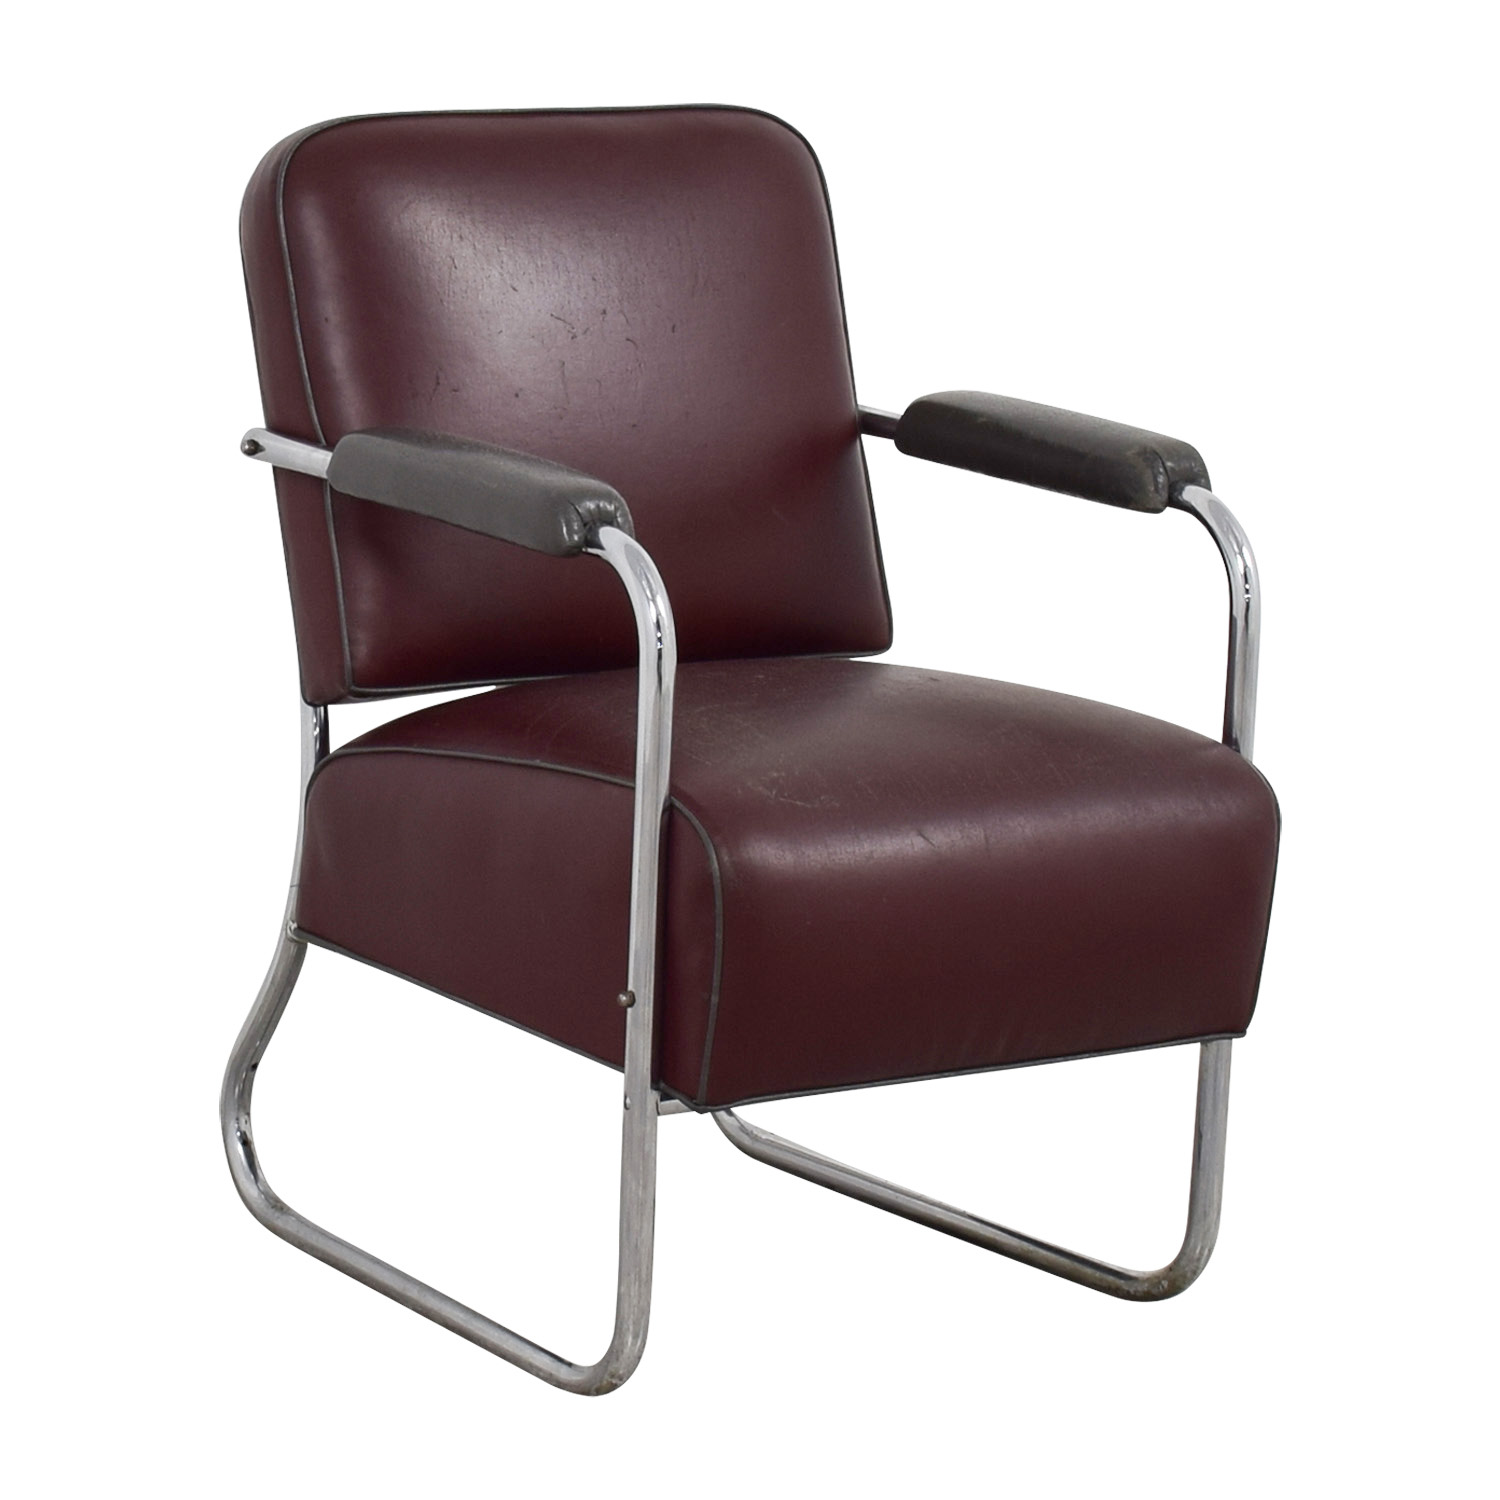 57% OFF Vintage Art Deco Leather Chair Chairs